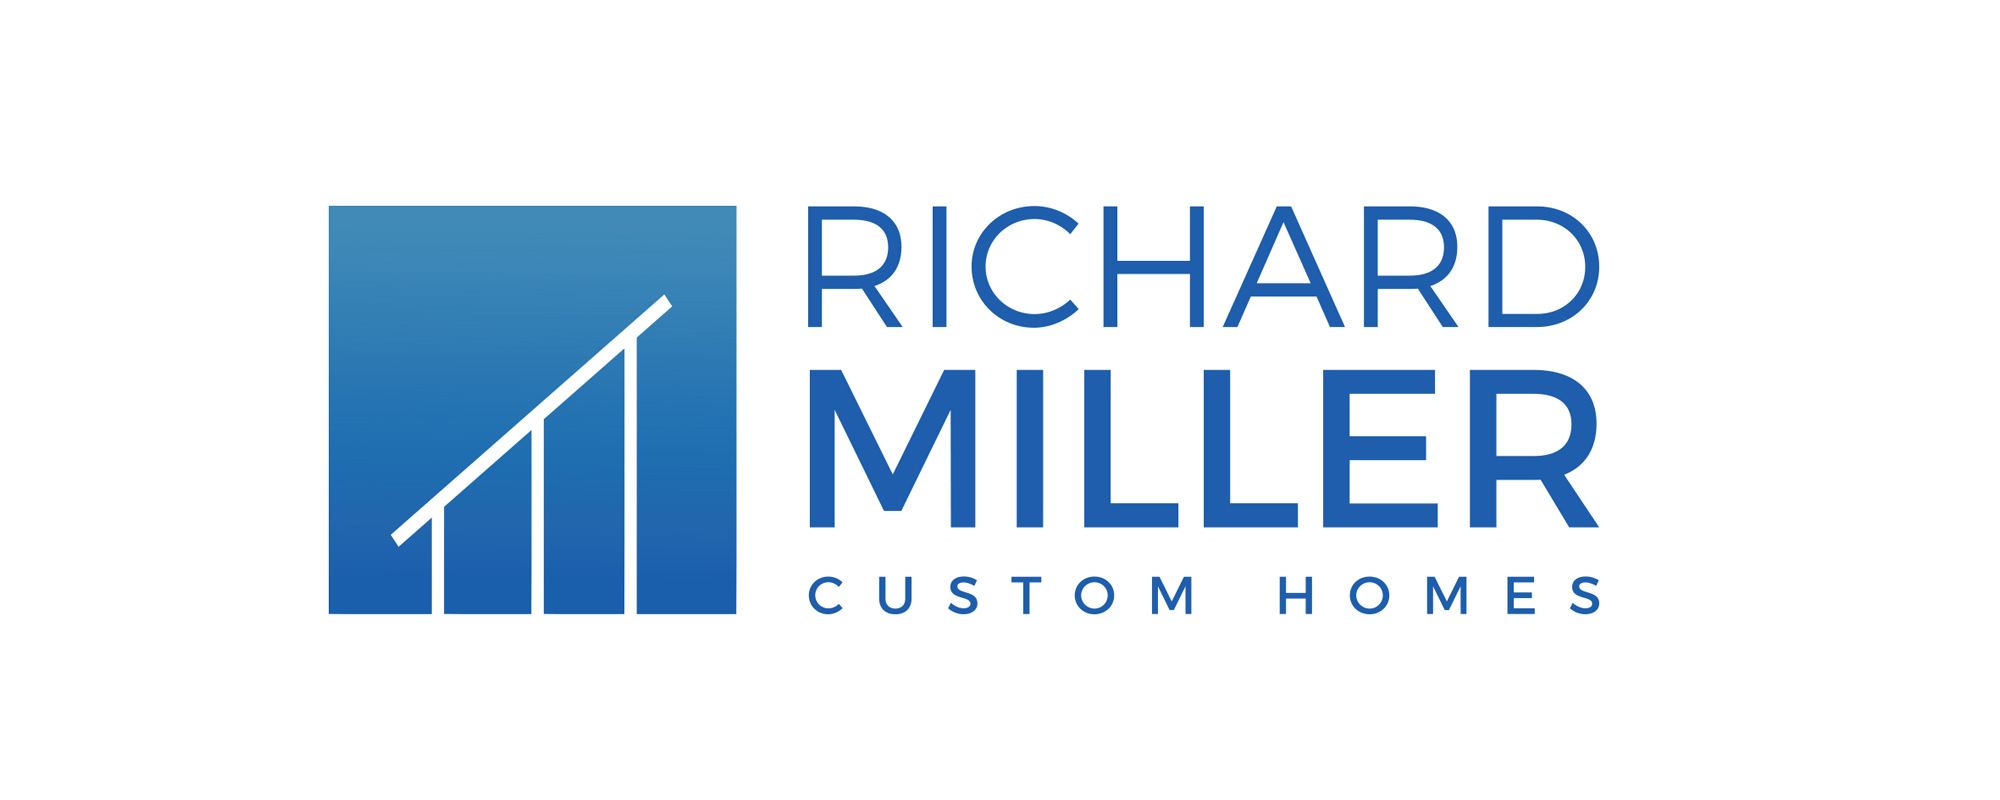 Richard Miller Custom Homes